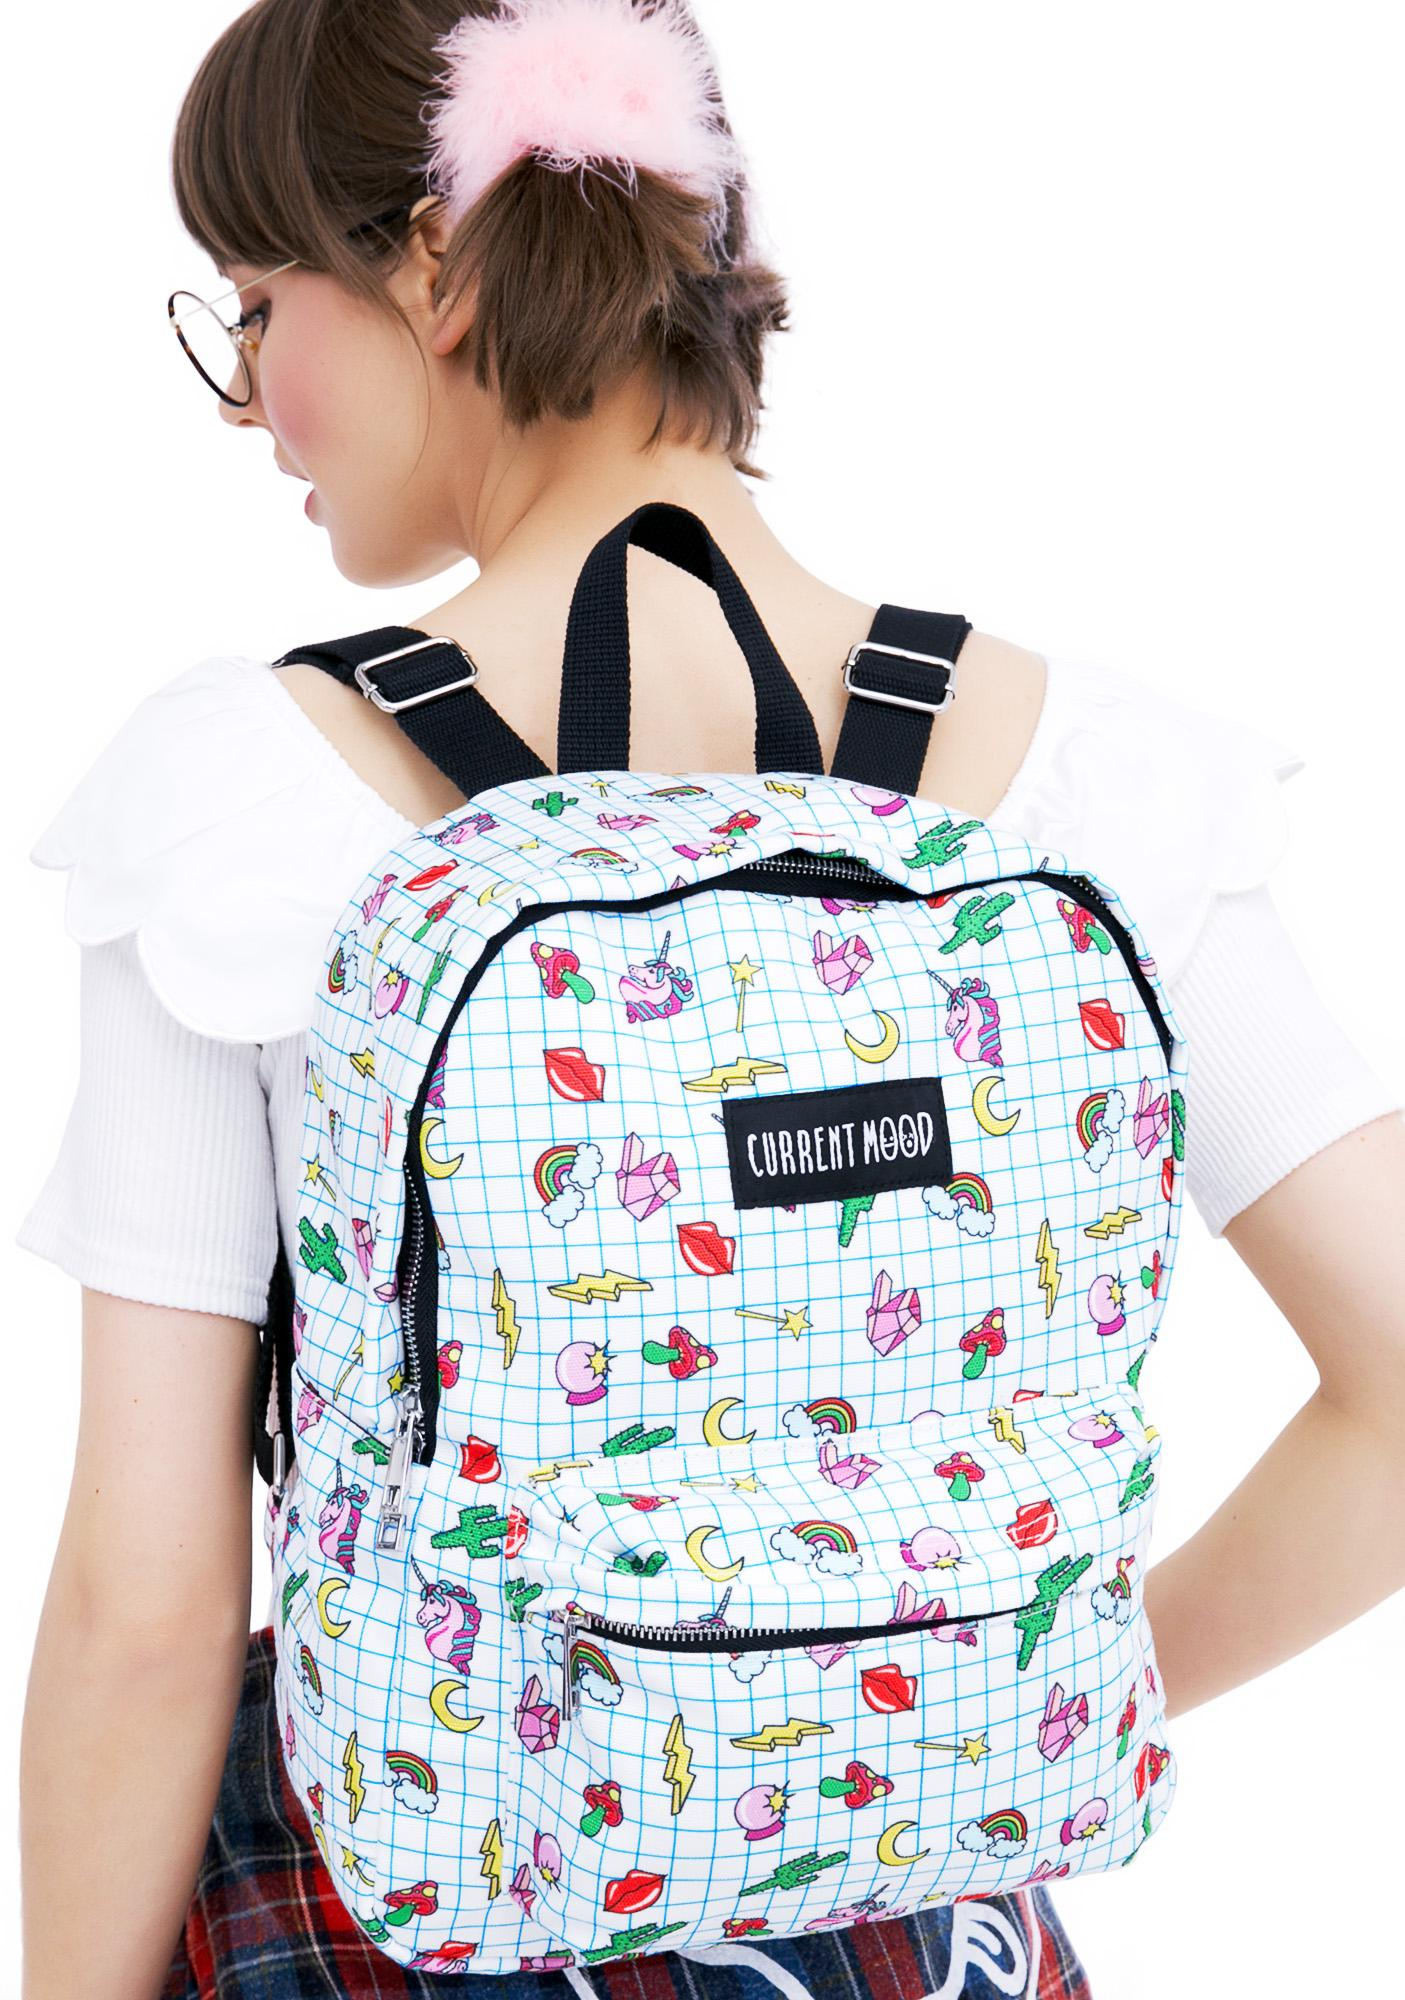 Current Mood Graphdoodle Backpack